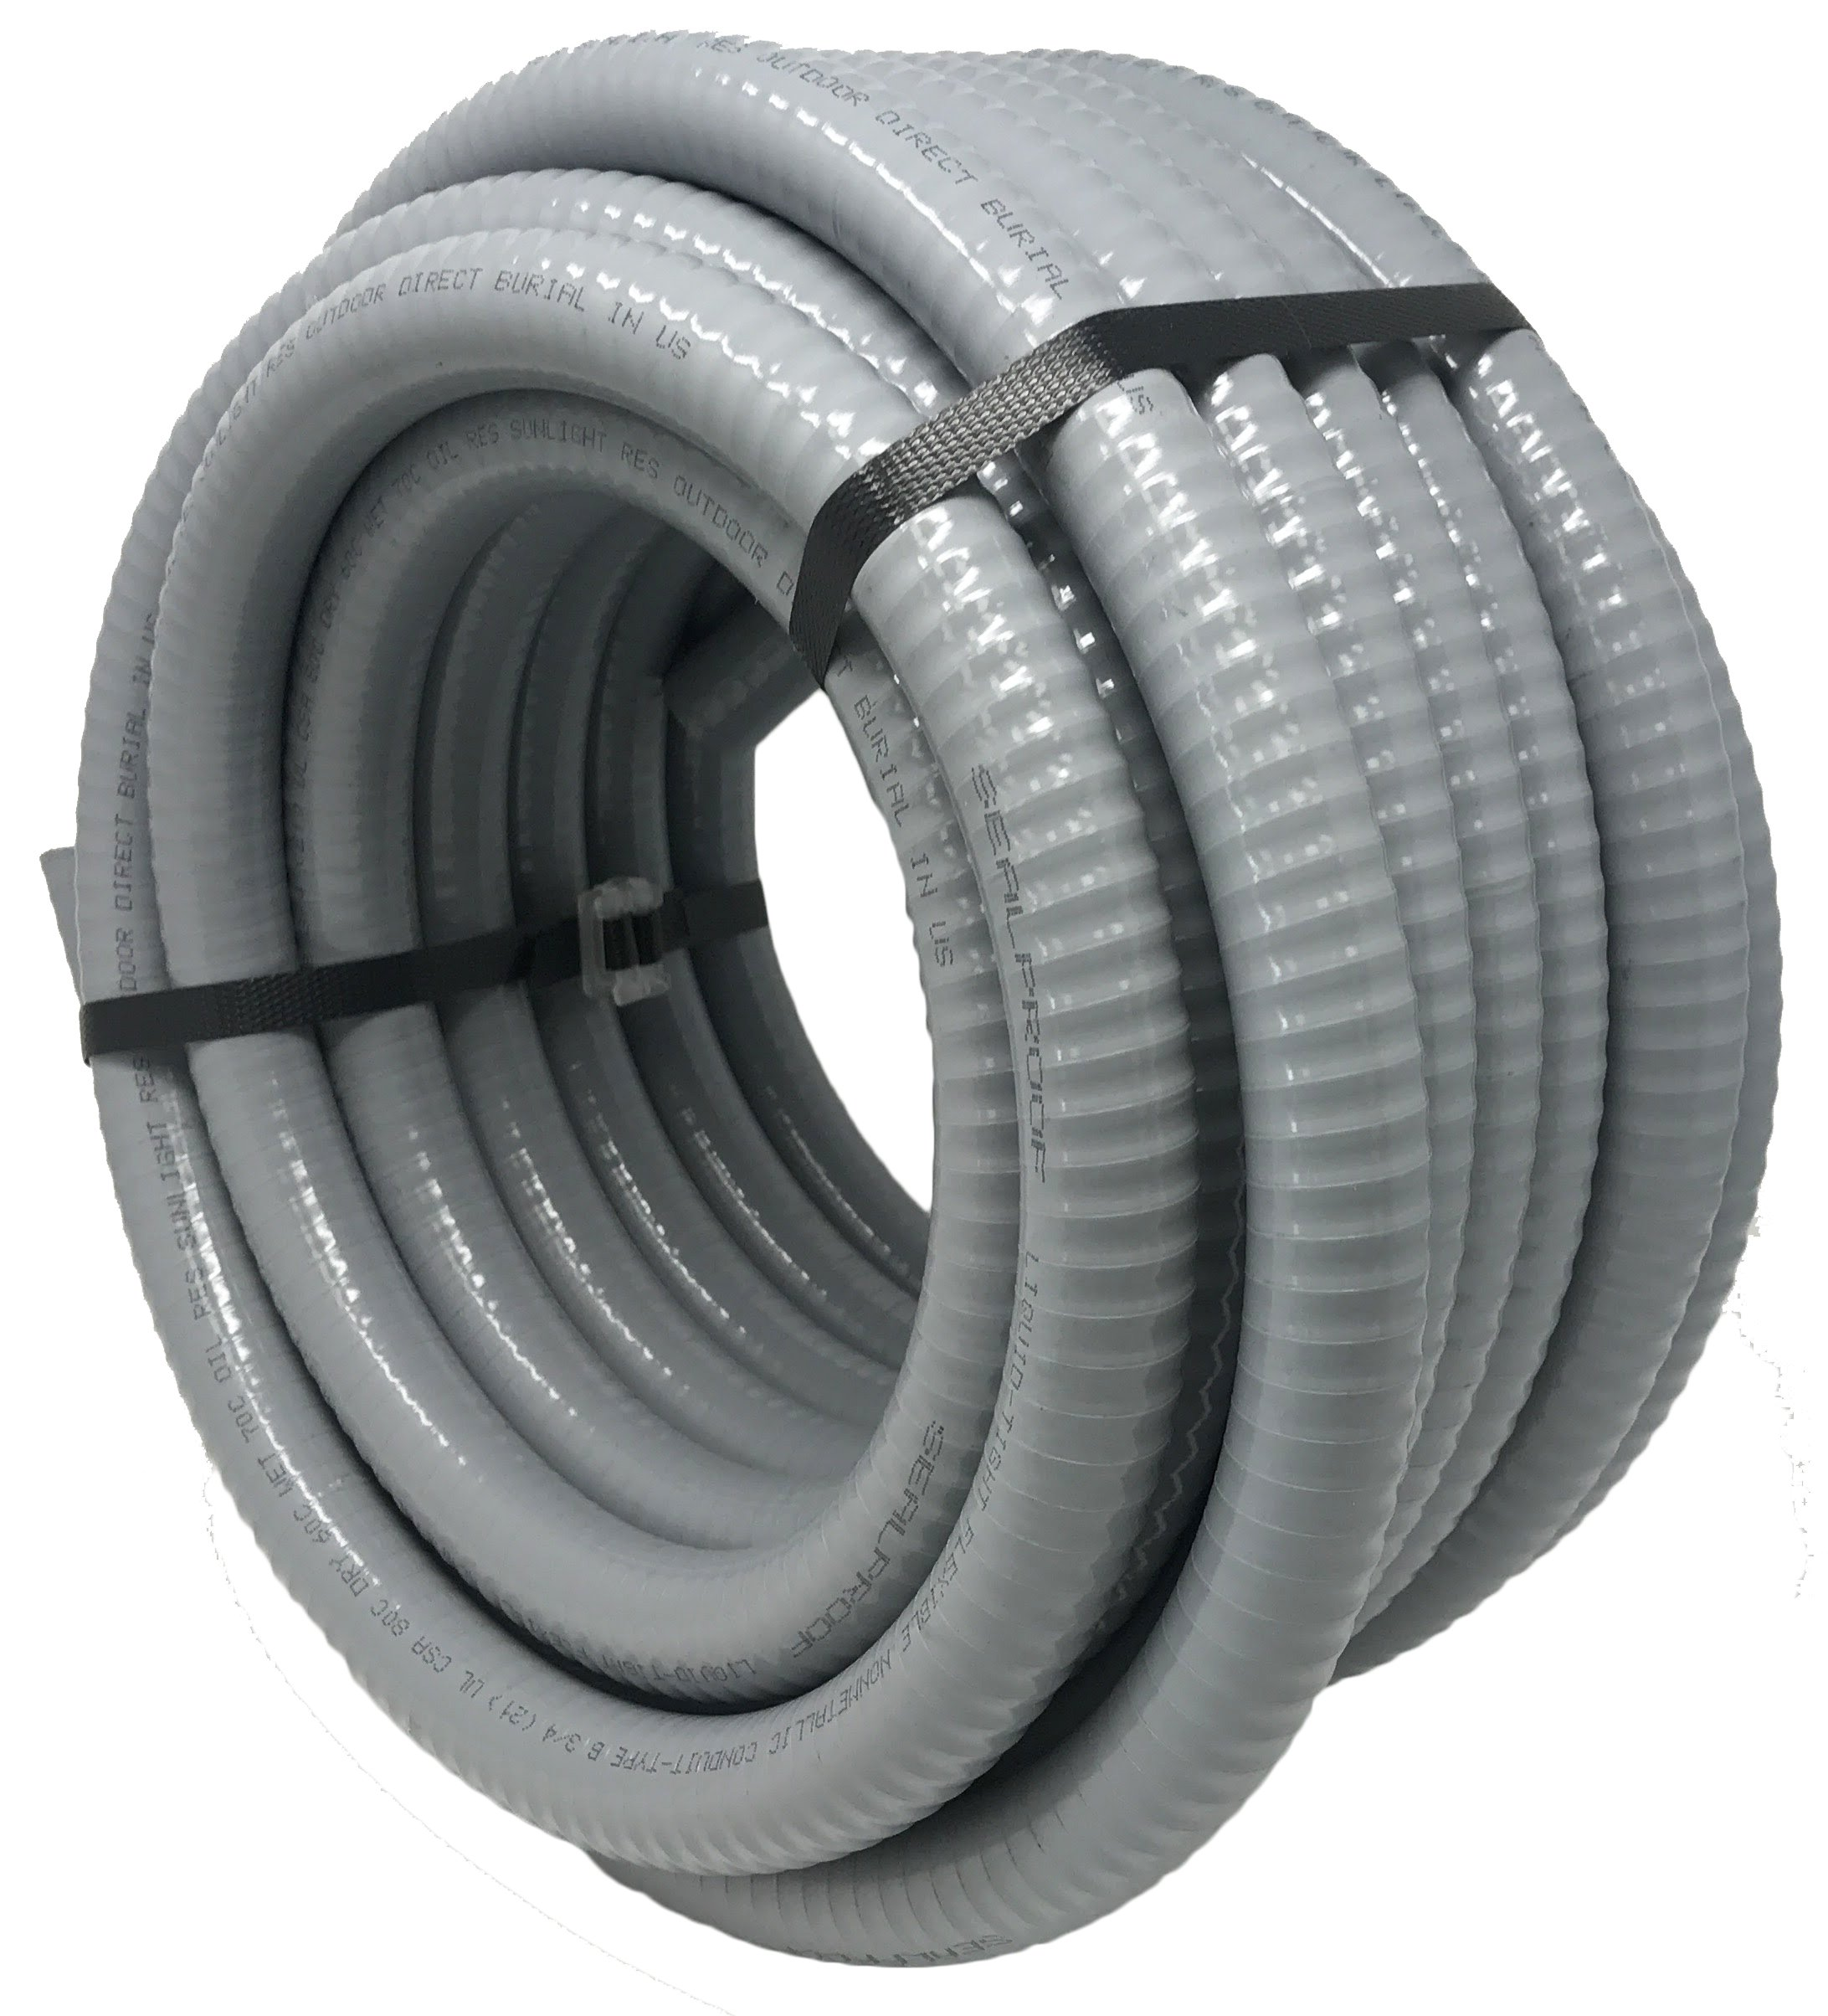 Sealproof 3/4-Inch Flexible Non-metallic Liquid-Tight Electrical Conduit Type B, UL Listed, 3/4'' Dia, 50 Feet